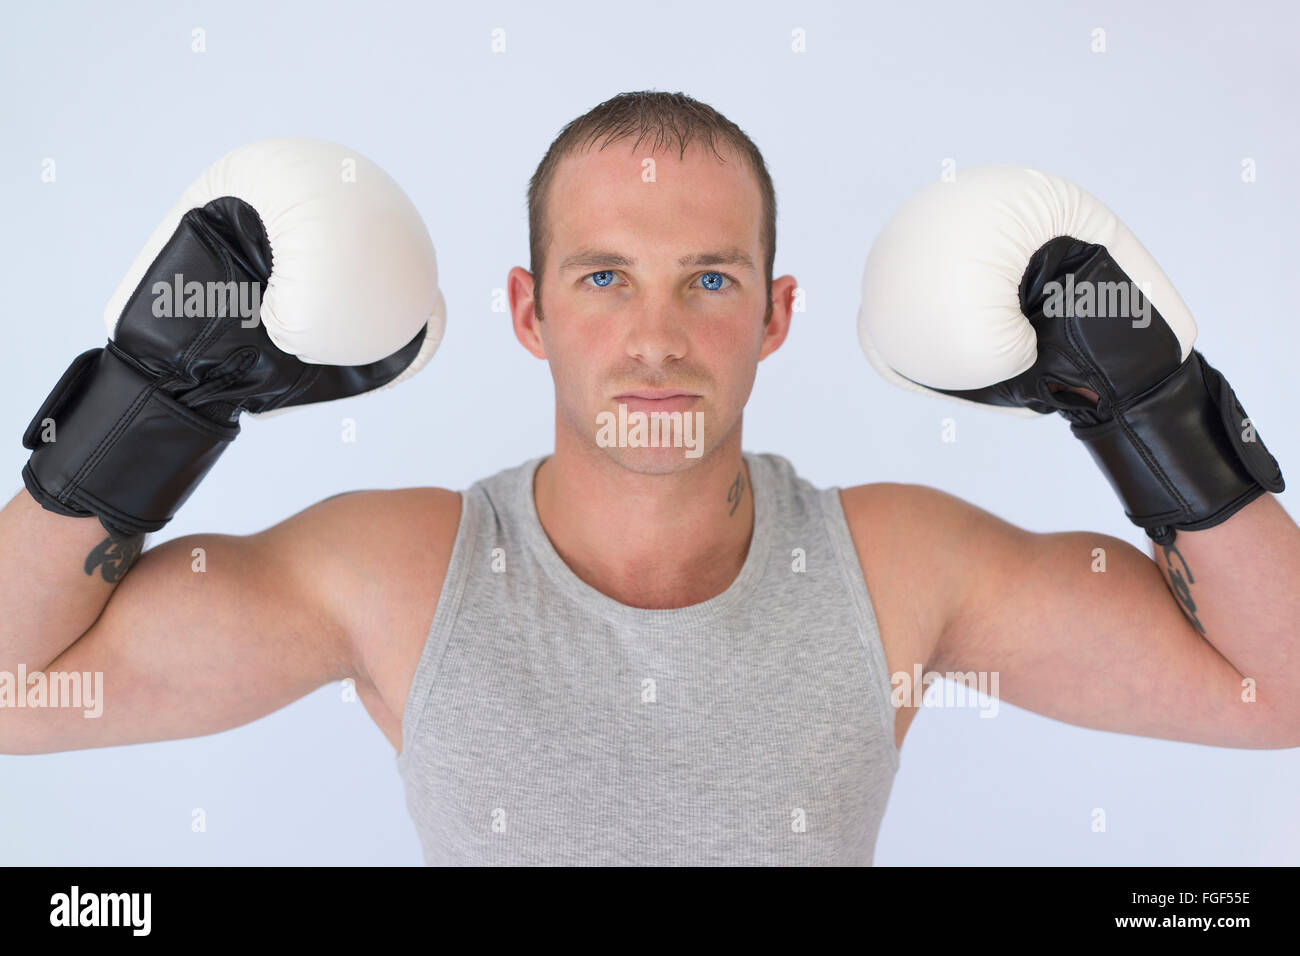 Man wearing boxing gloves flexing his biceps with a serious expression of concentration - Stock Image